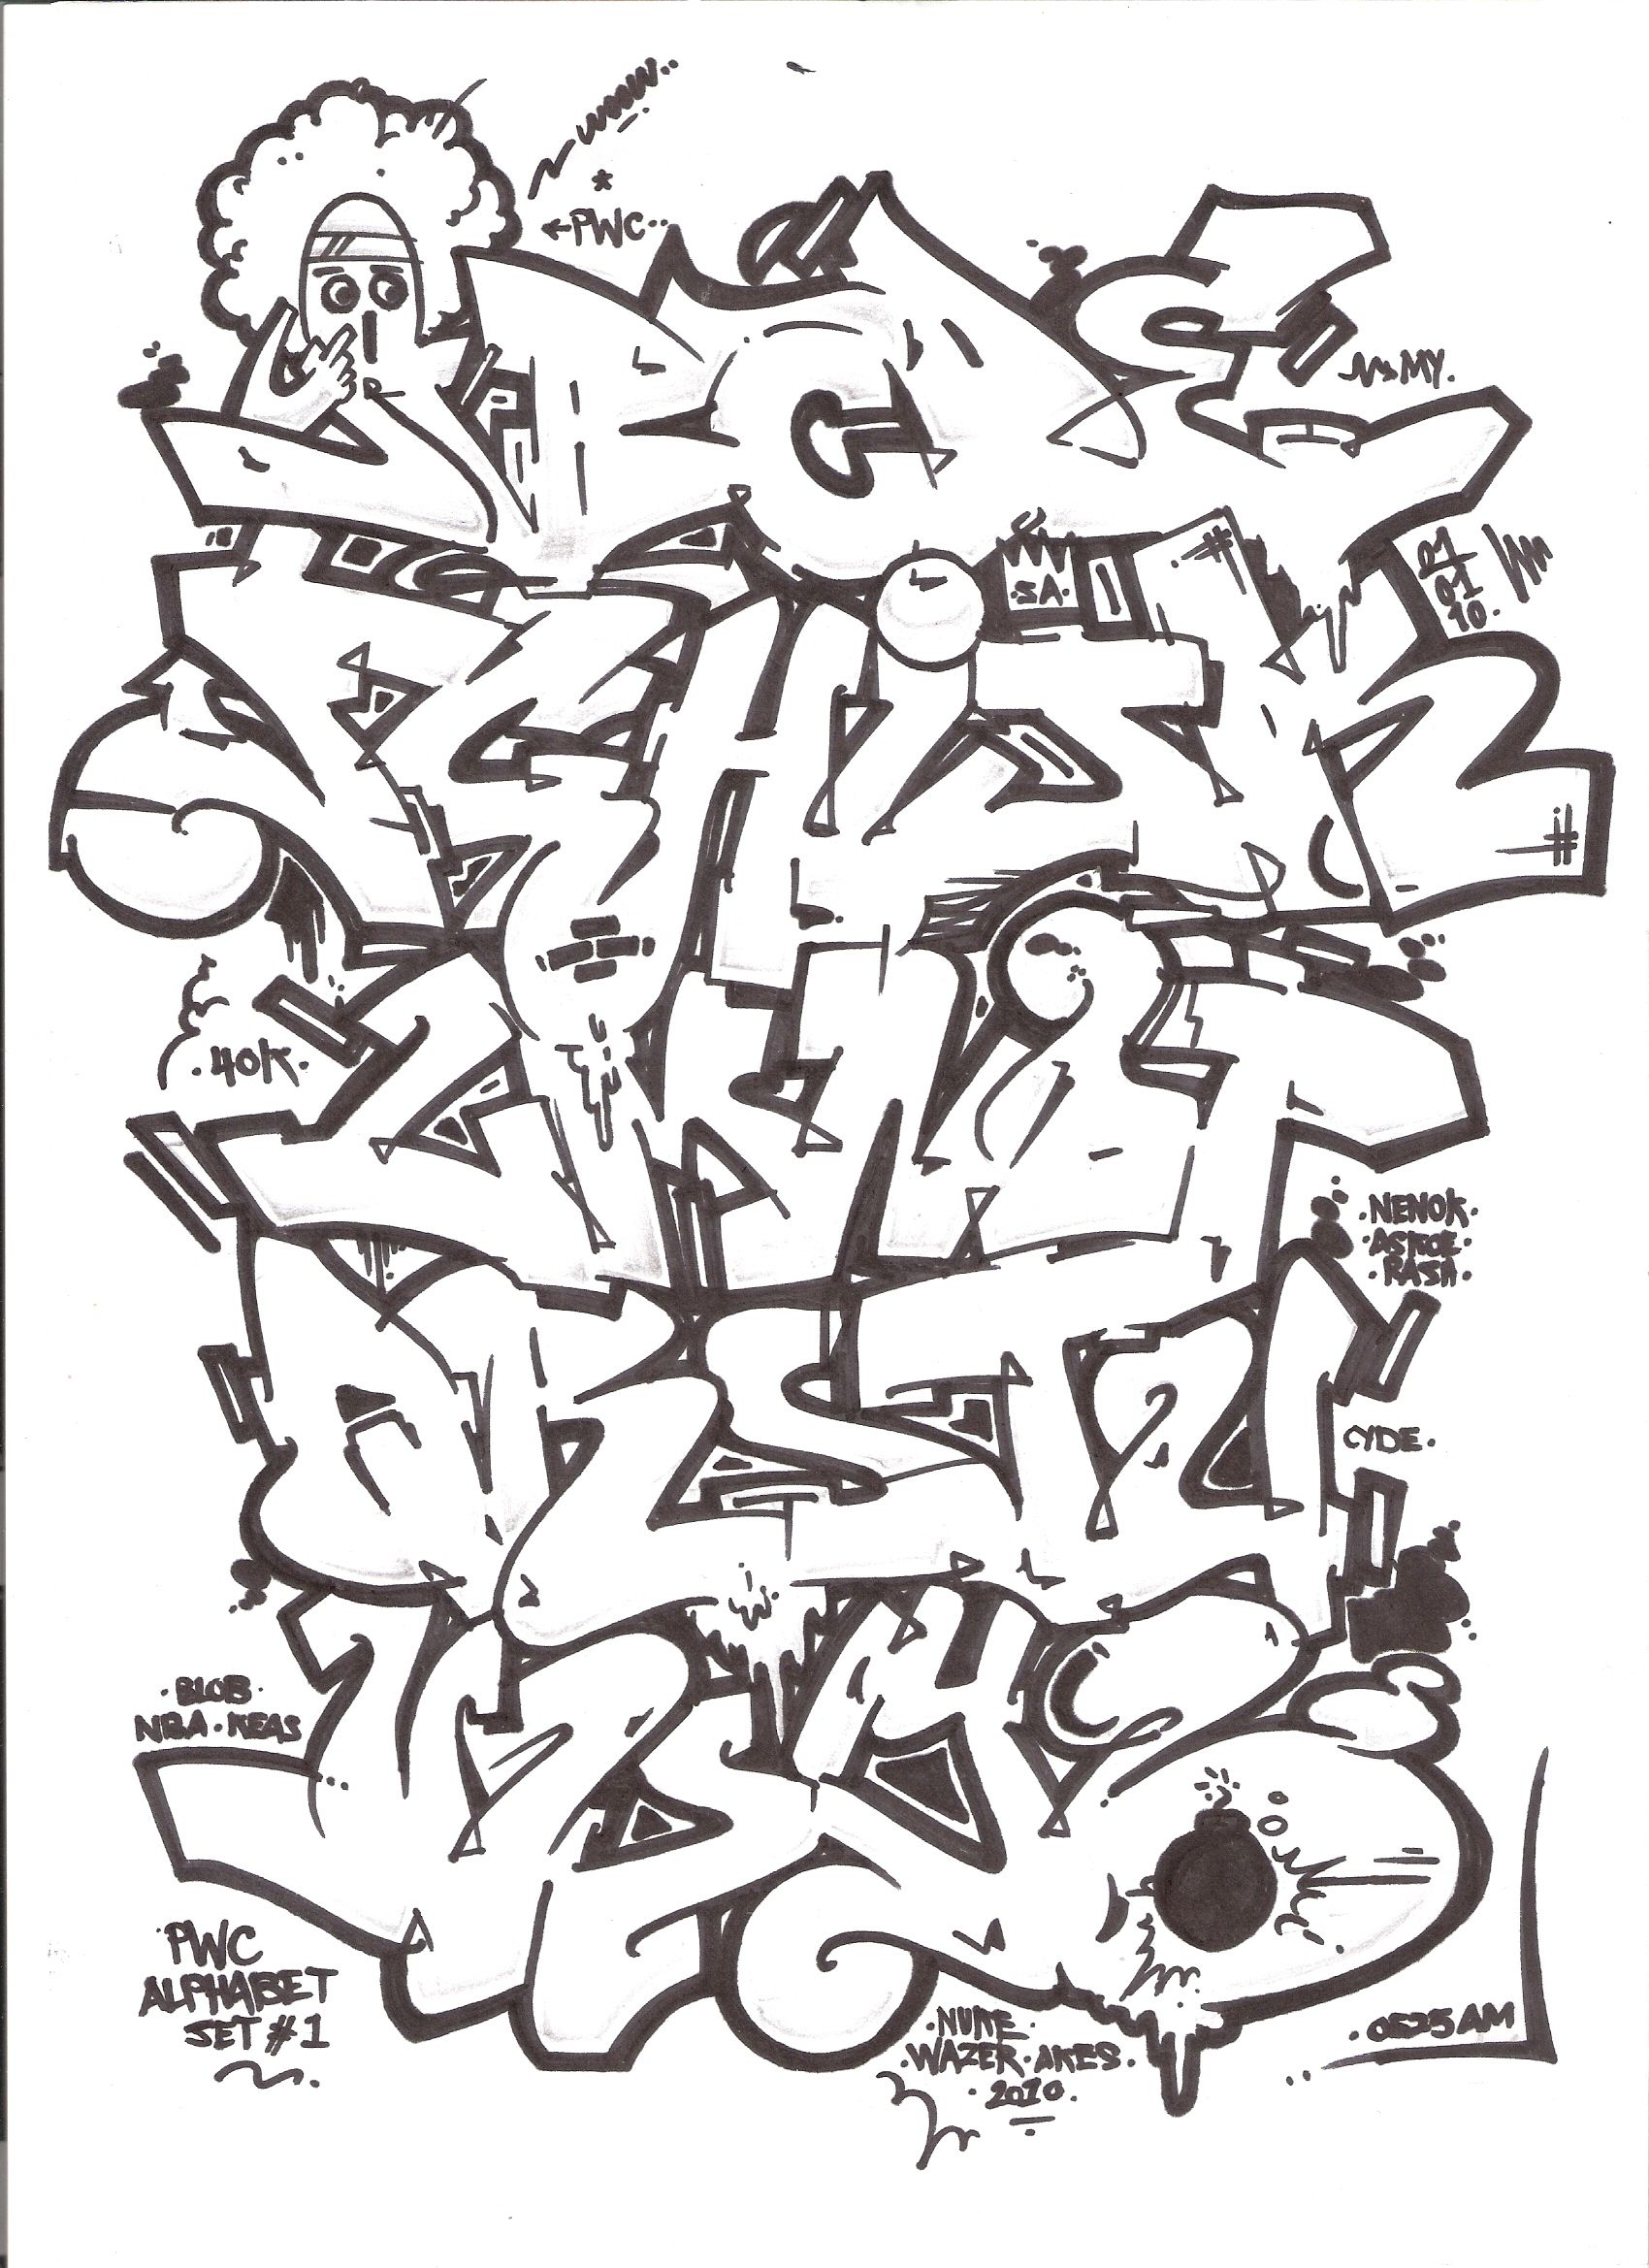 Pin By Thethinkmovement On Graffiti Alphabet Graffiti Alphabet